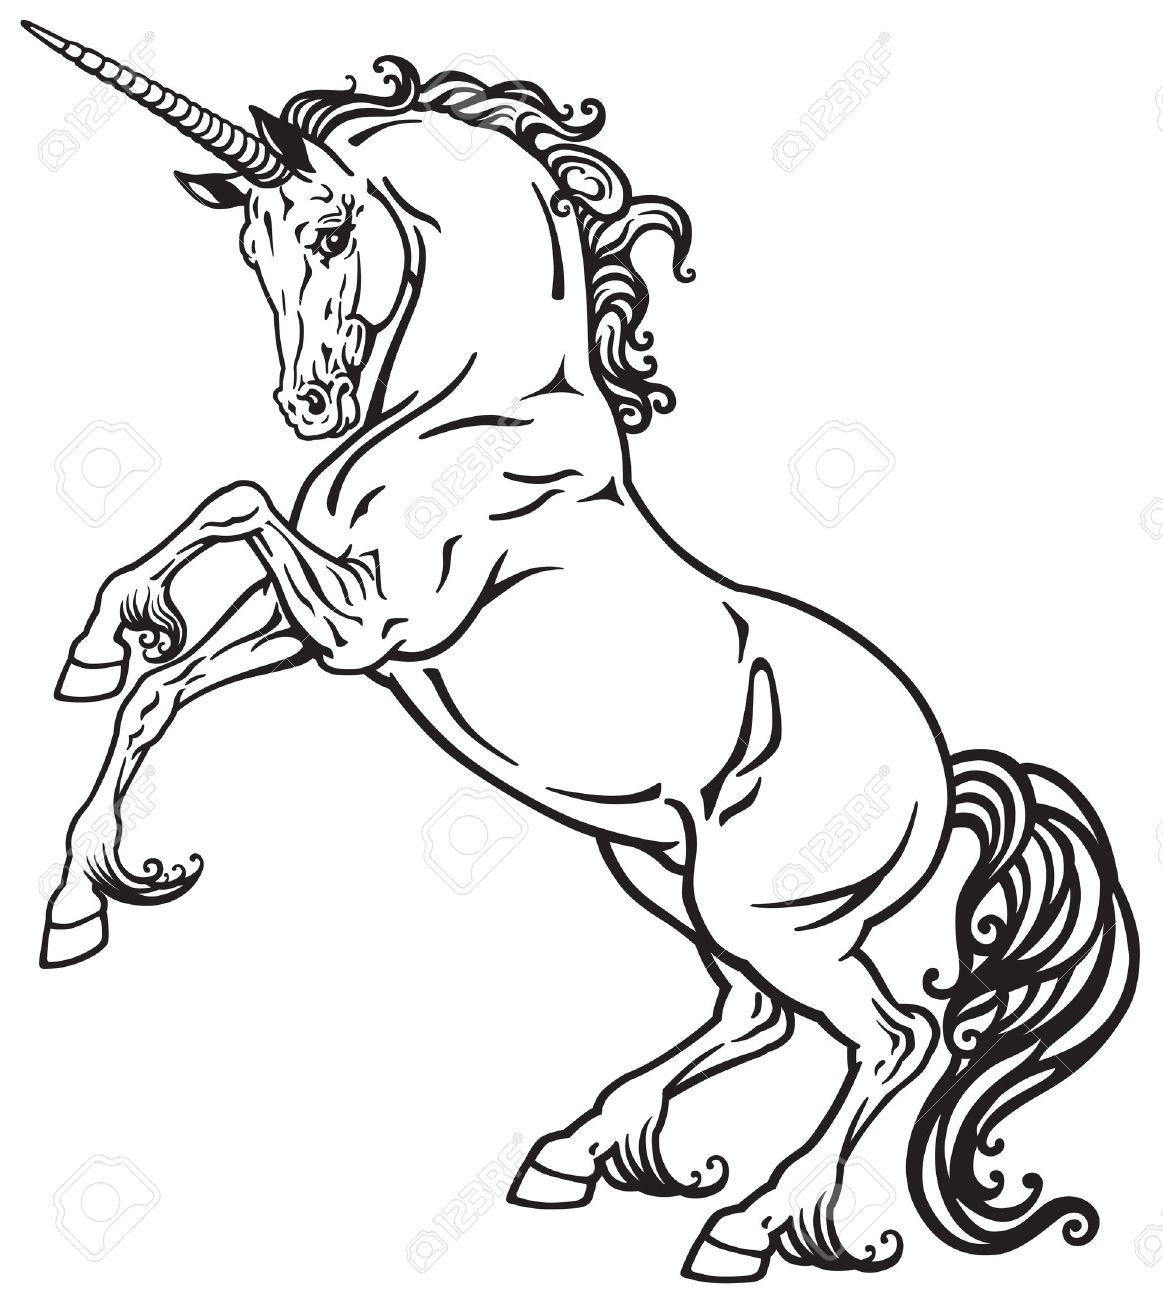 1163x1300 Horse Rearing Stock Photos. Royalty Free Business Images